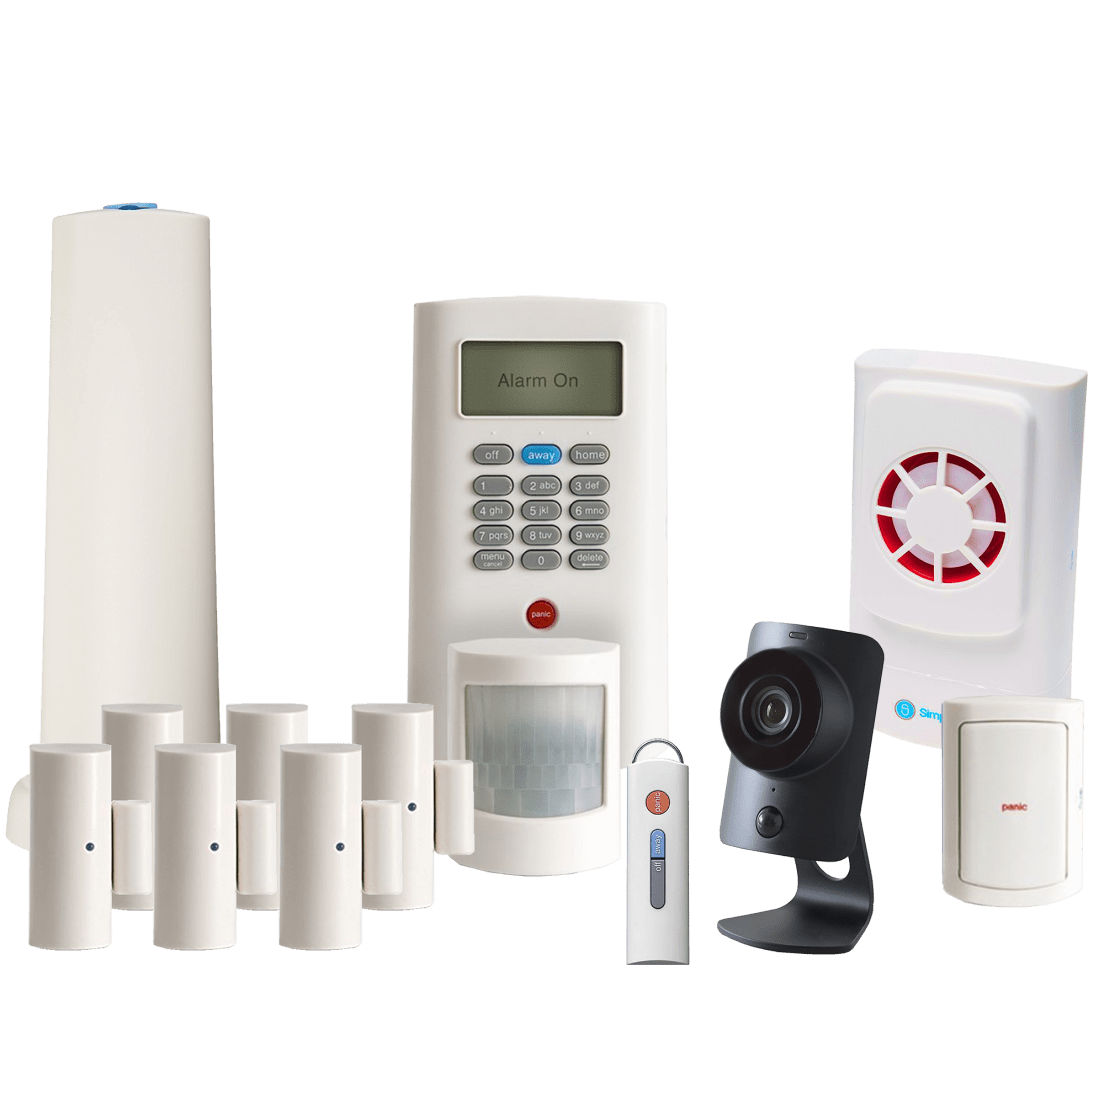 Simplisafe Shield Wireless Home Security System Switchmate39 Lets You Run Light Switch From Your Phone Without Rewiring